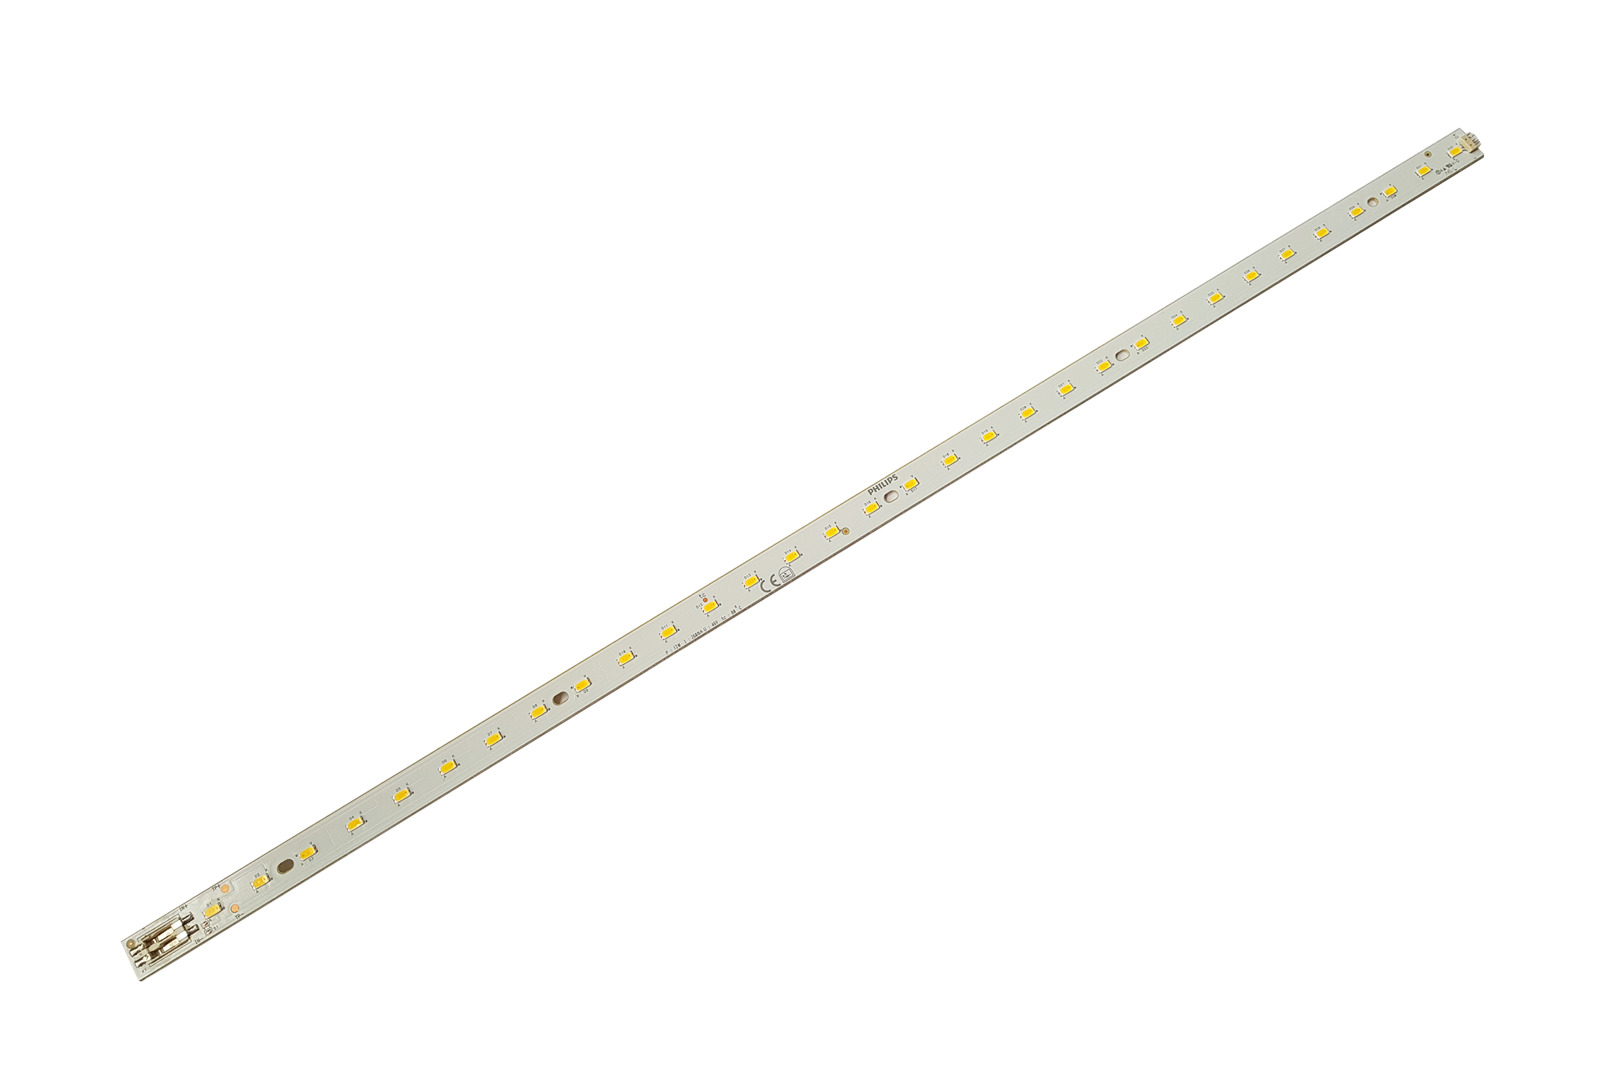 Philips Fortimo LED Strip 2FT 1375lm B2D 840